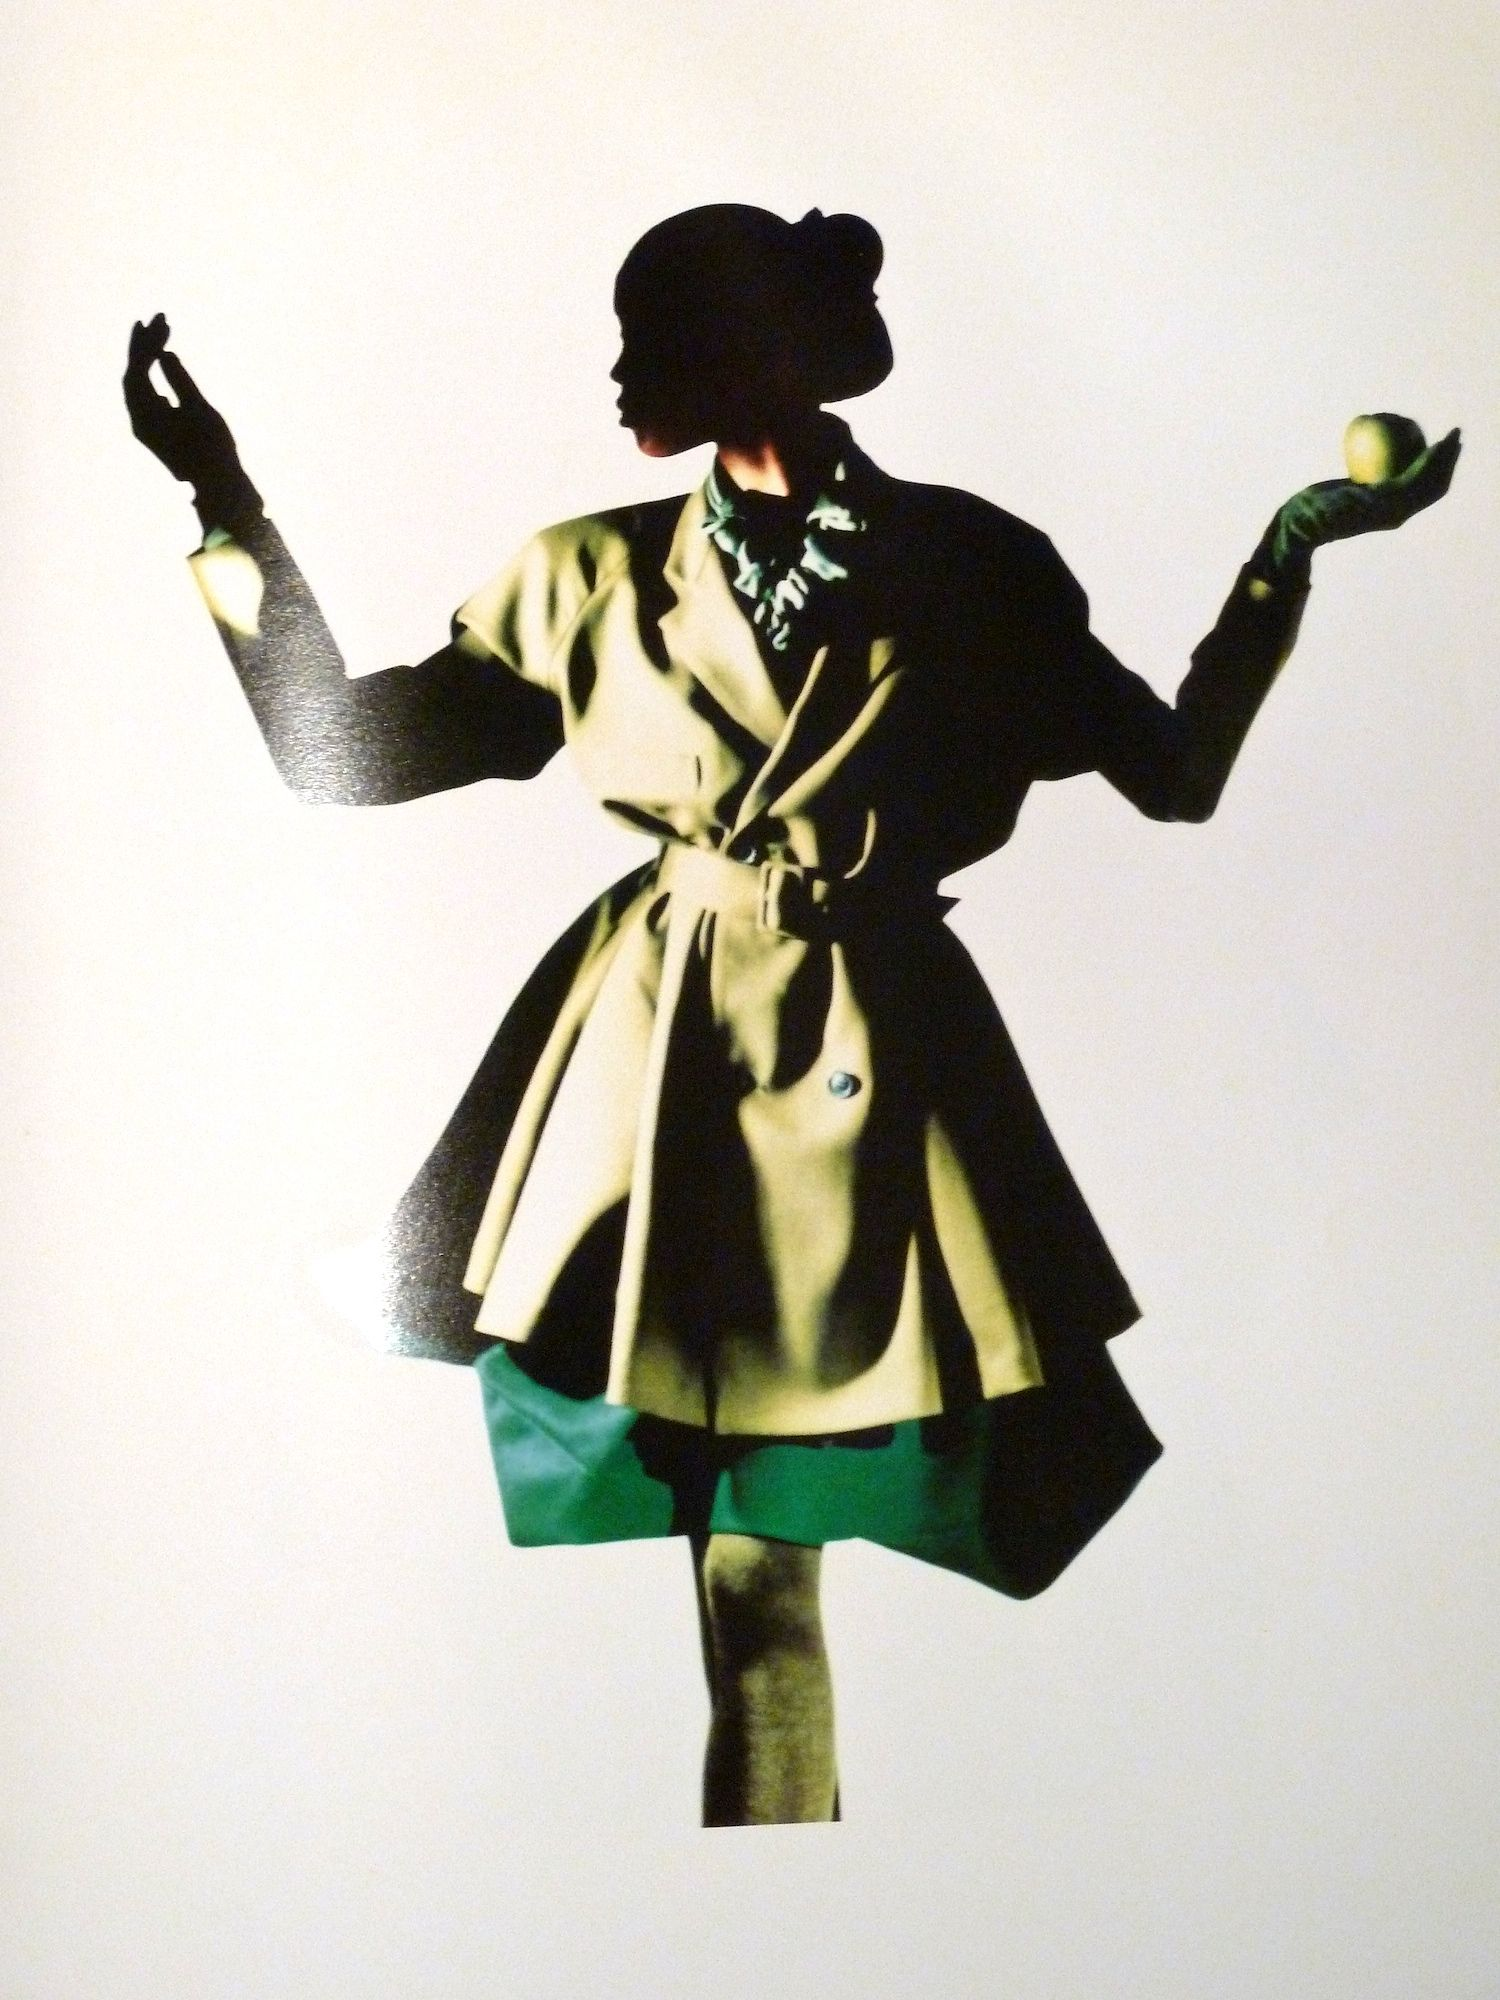 Nick Knight image from the original 80s catalogue of Yohji Yamamoto